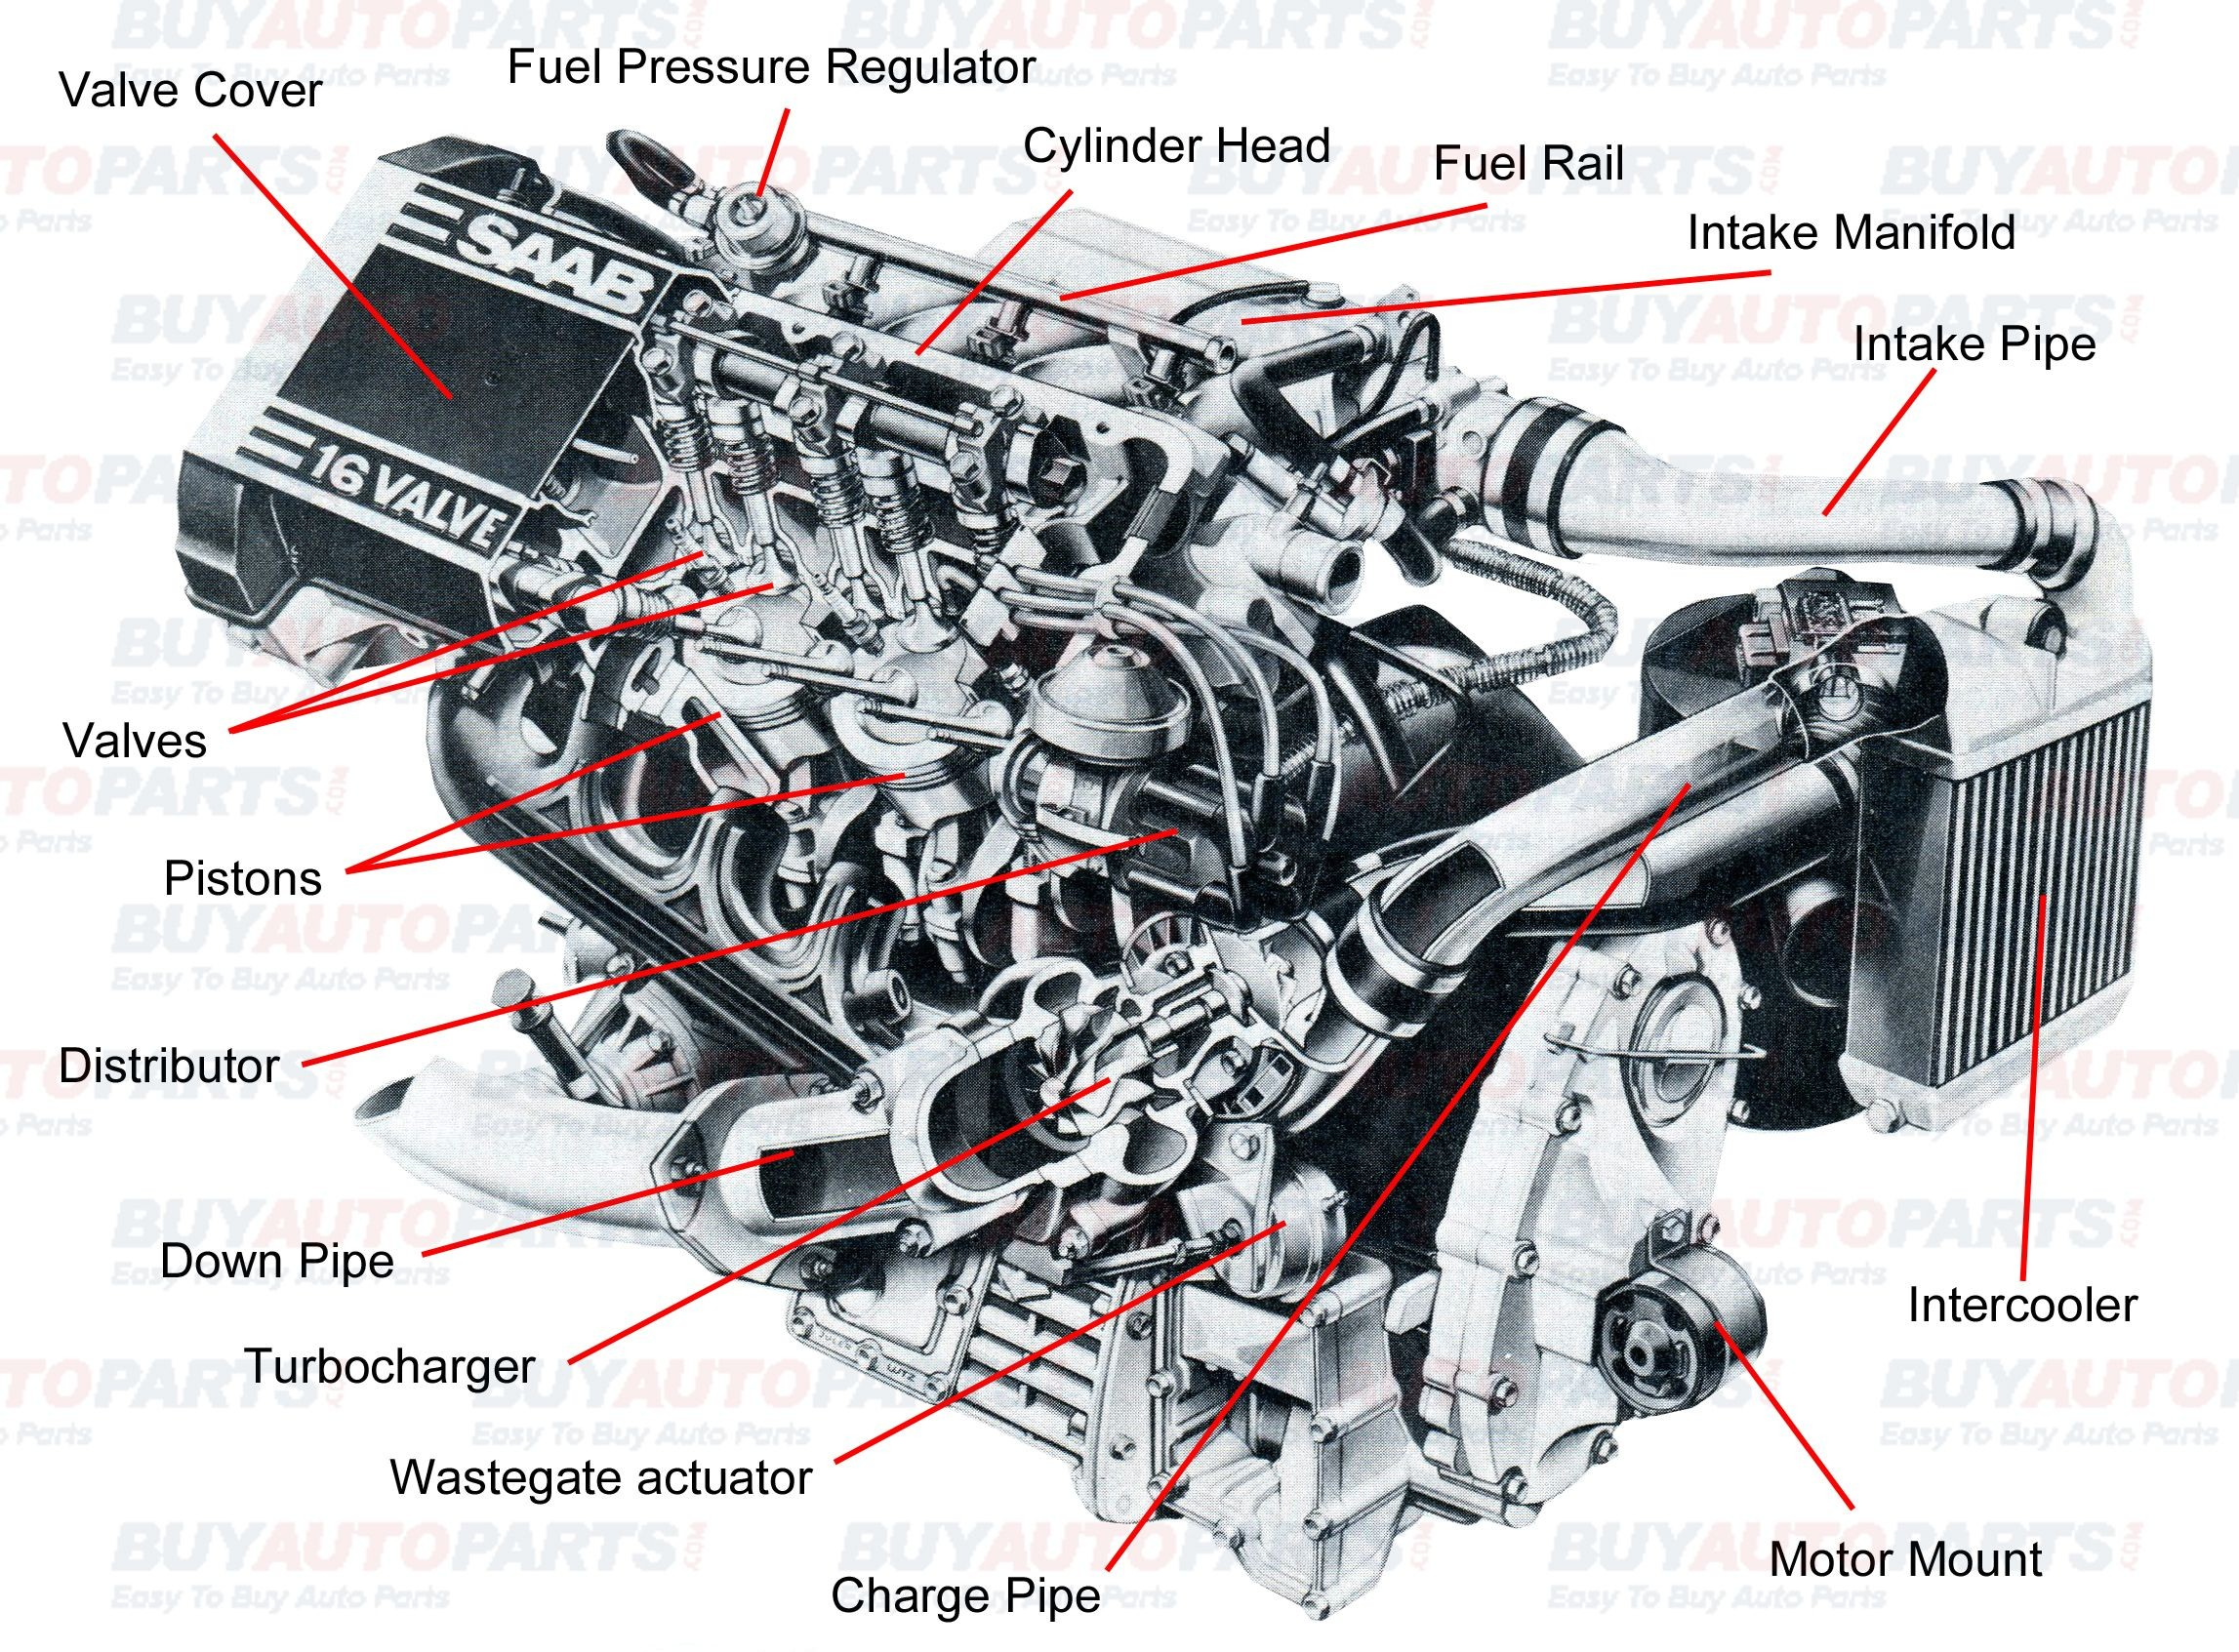 Automobile Body Parts Diagram Pin by Jimmiejanet Testellamwfz On What Does An Engine with Turbo Of Automobile Body Parts Diagram